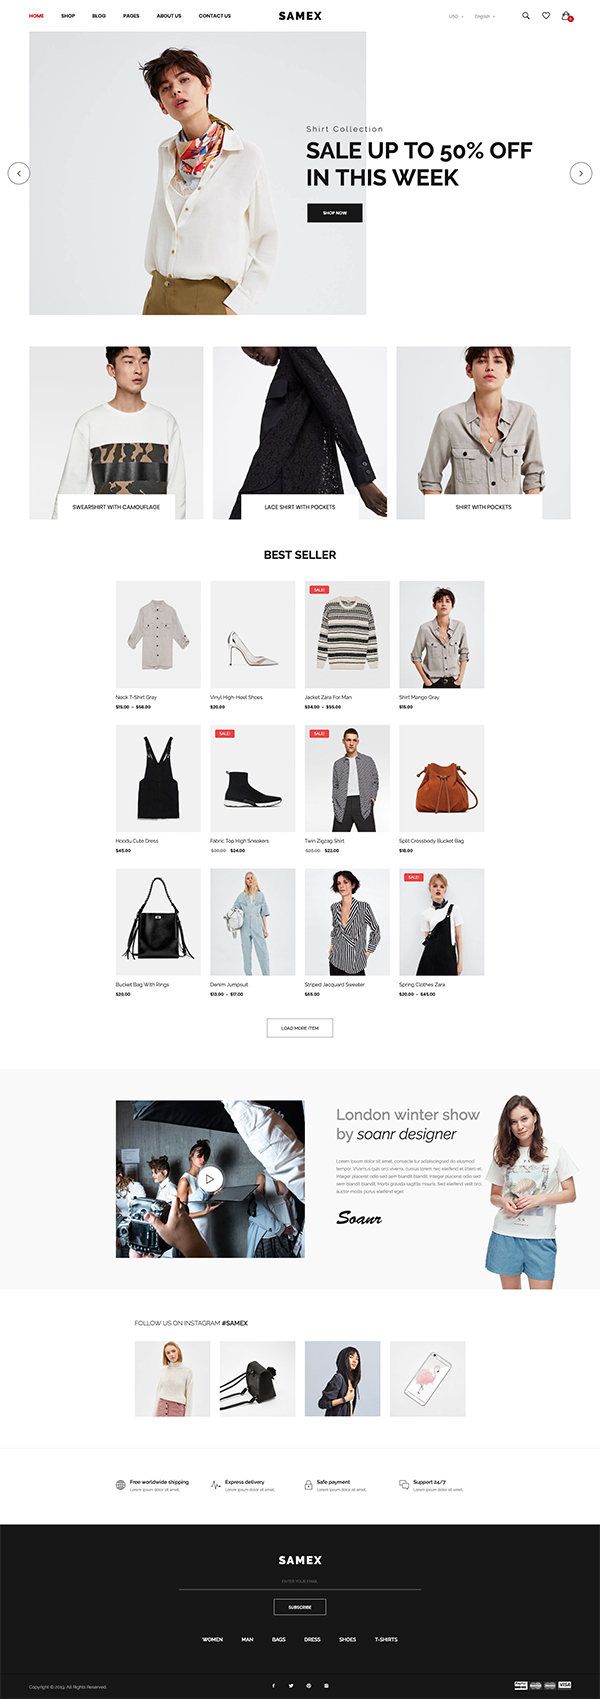 Samex - Clean, Minimal Shop WooCommerce WordPress Theme